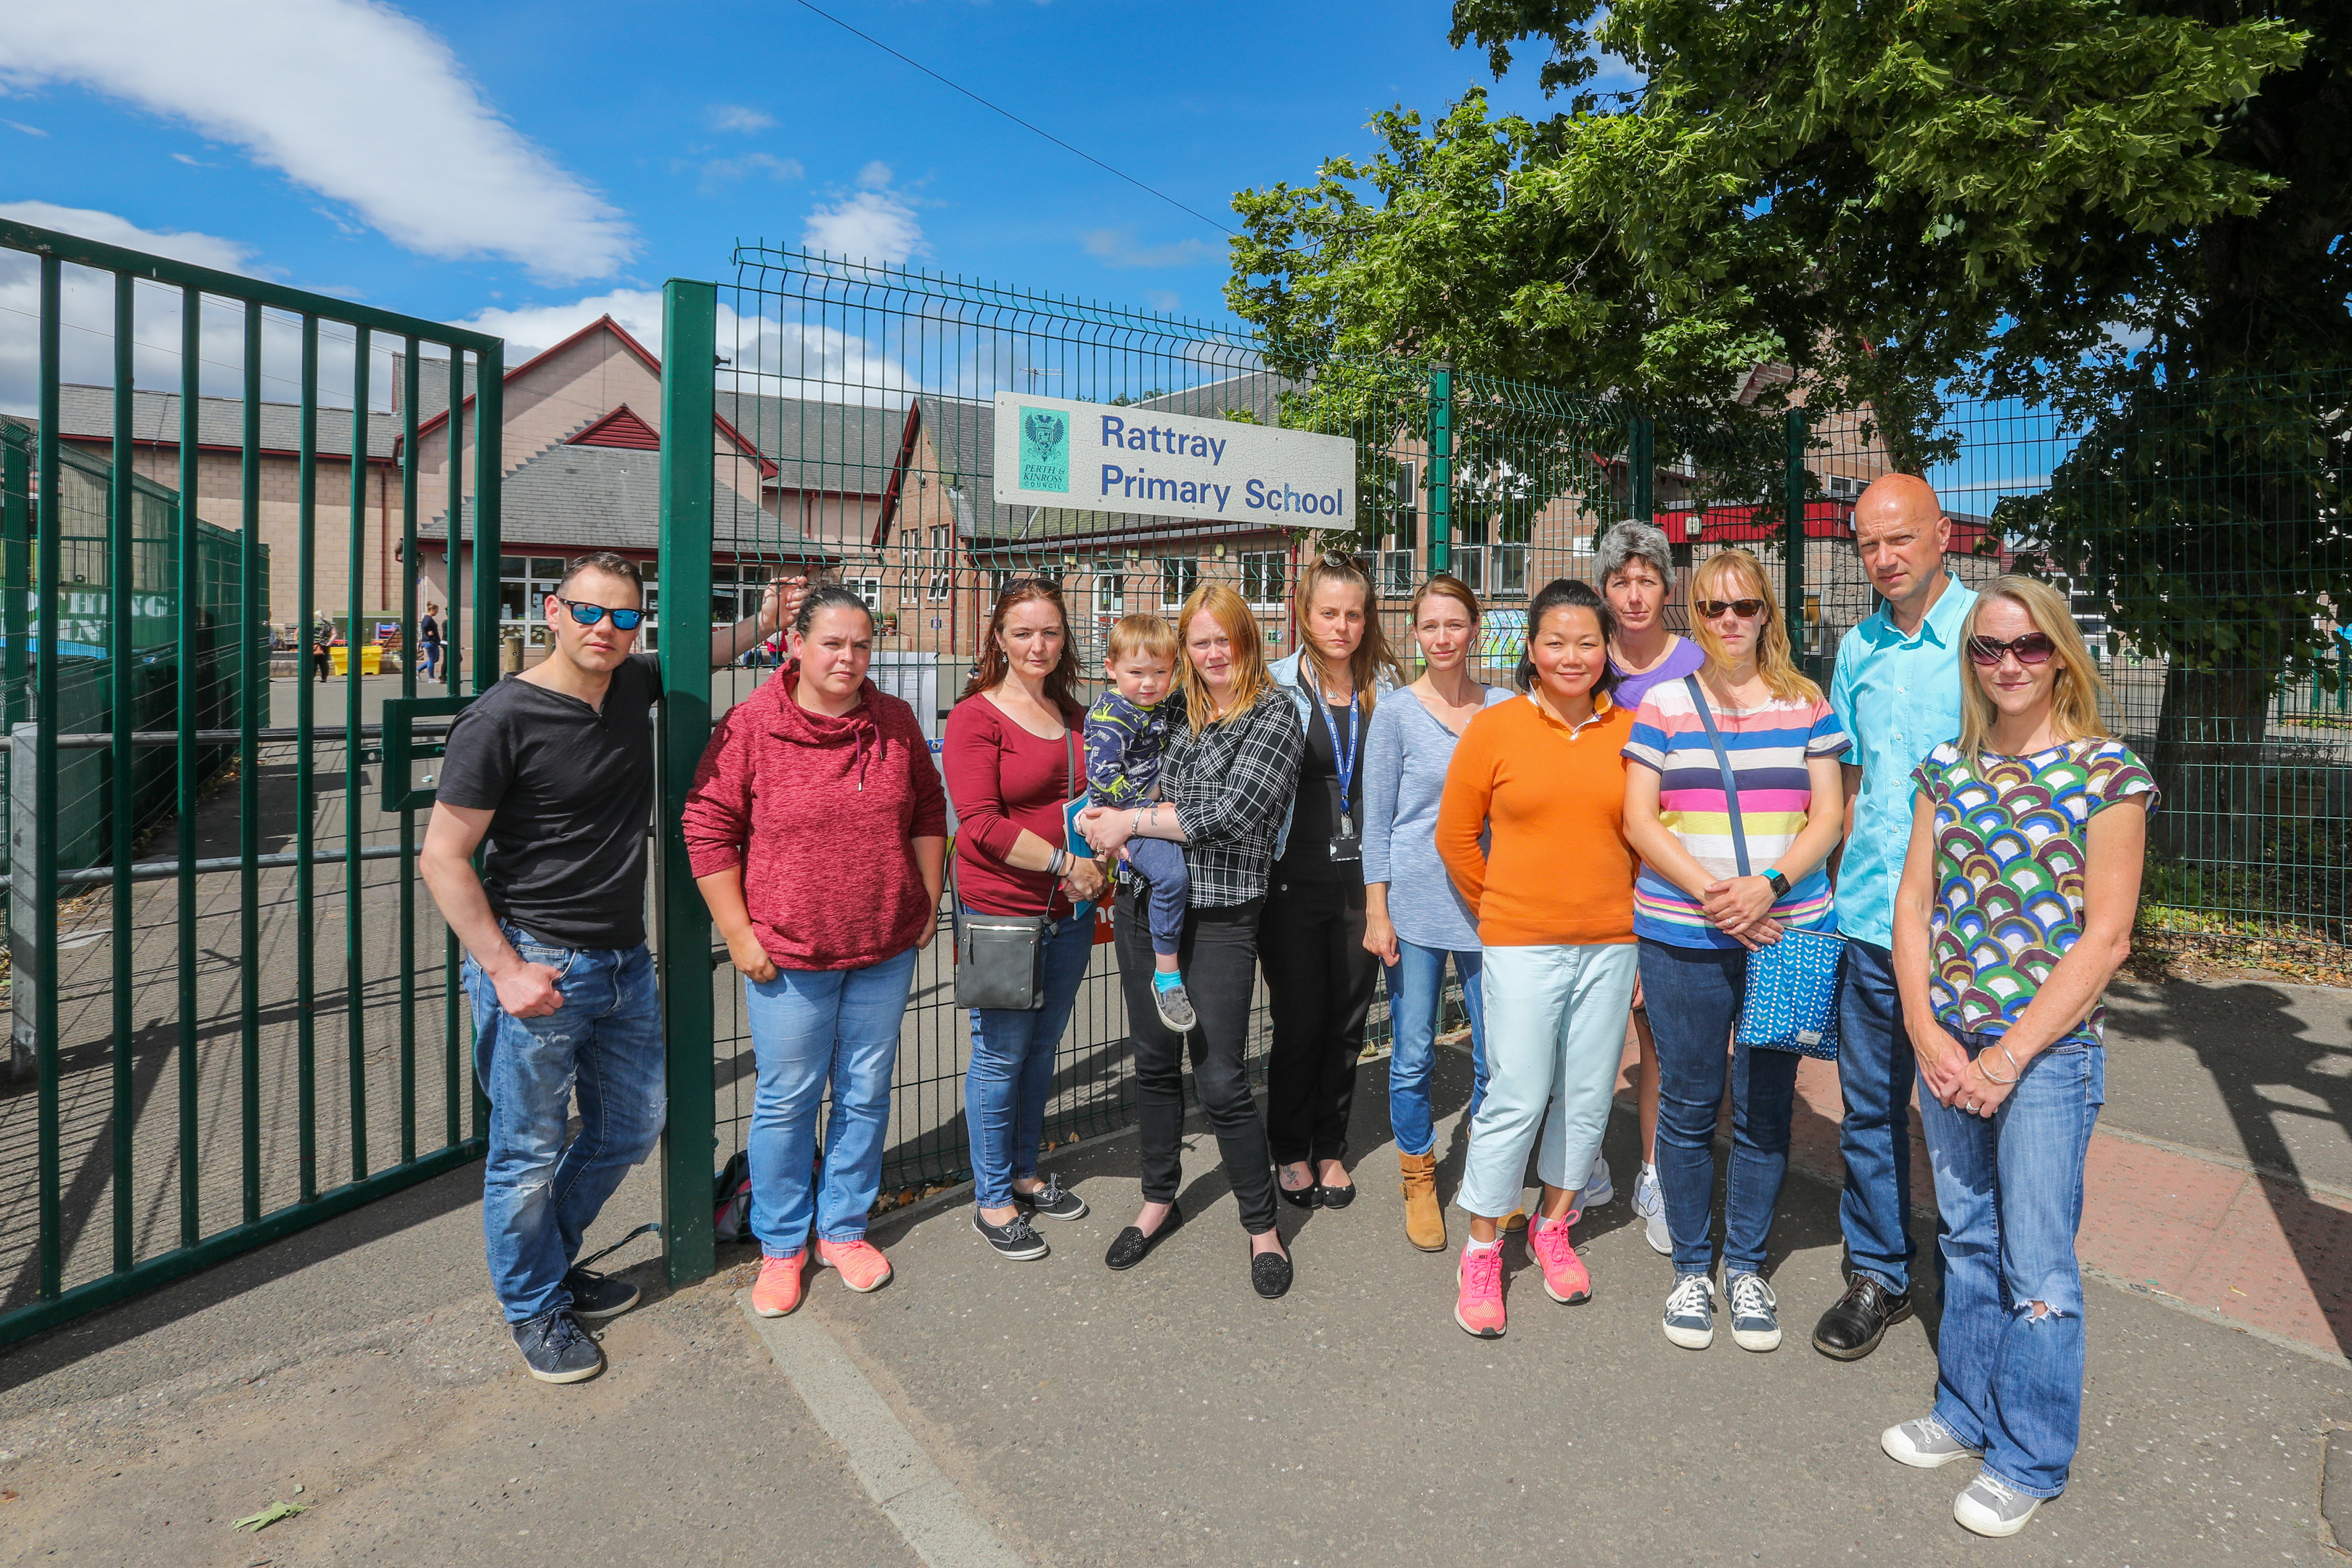 Parents outside school grounds with nursery entrance in background. Rattray Primary School, High Street, Rattray.